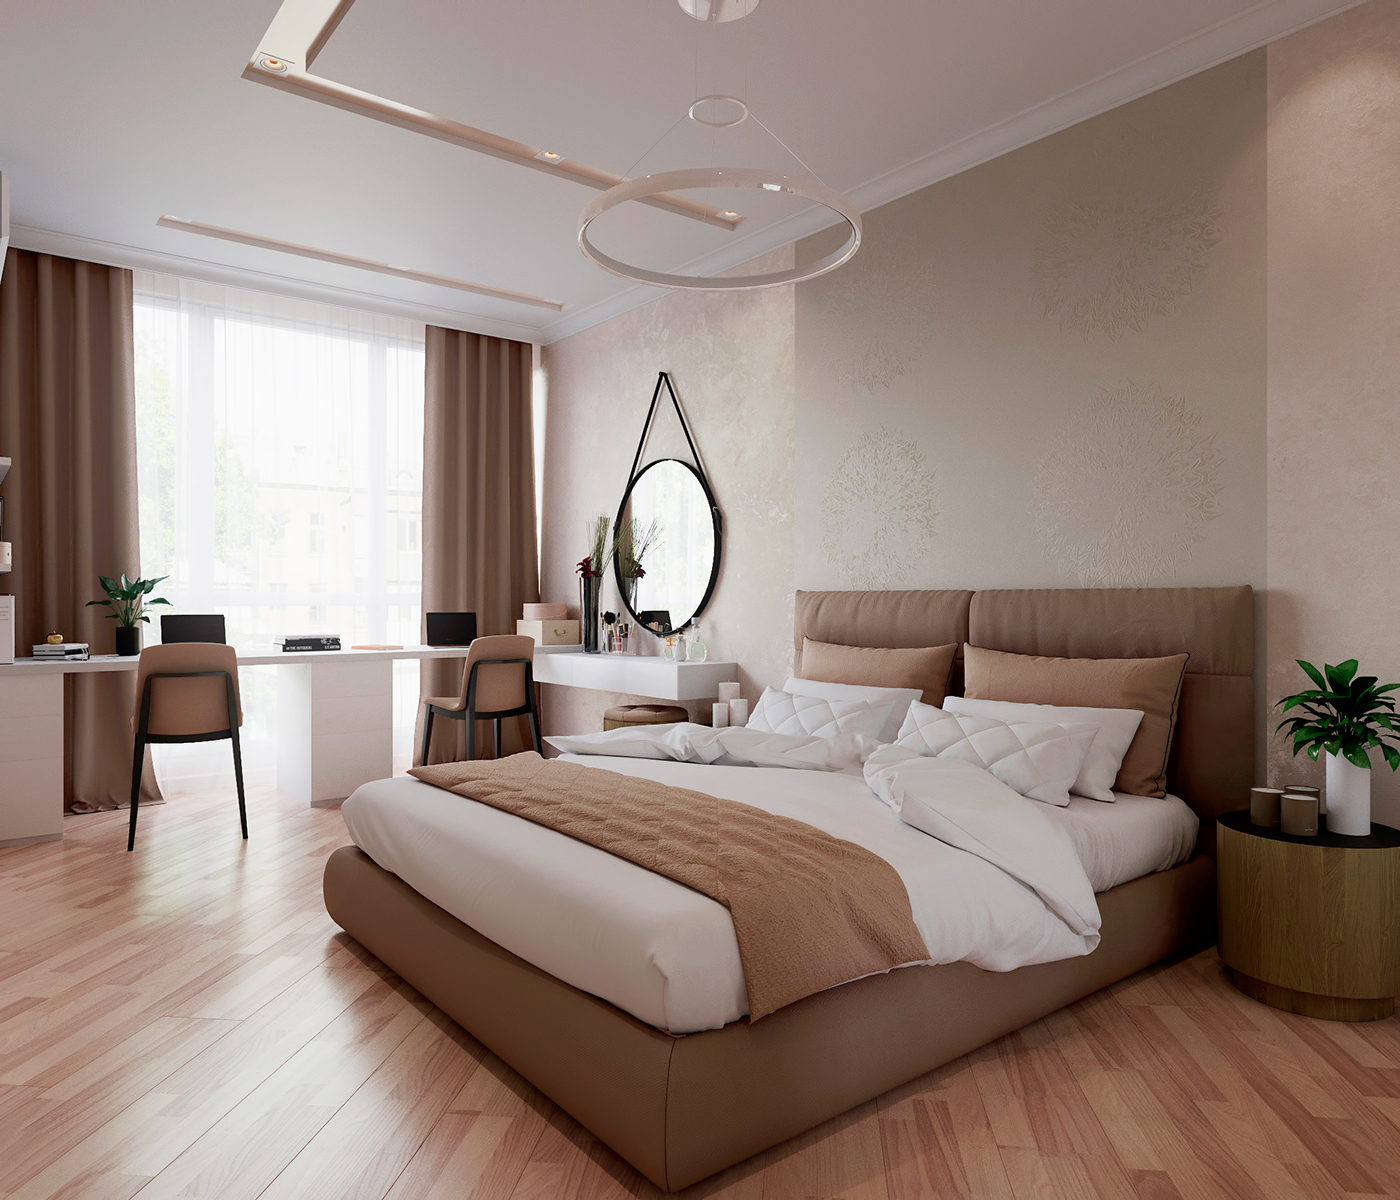 Bedroom In Contemporary Style On Behance: Modern Bedroom On Behance